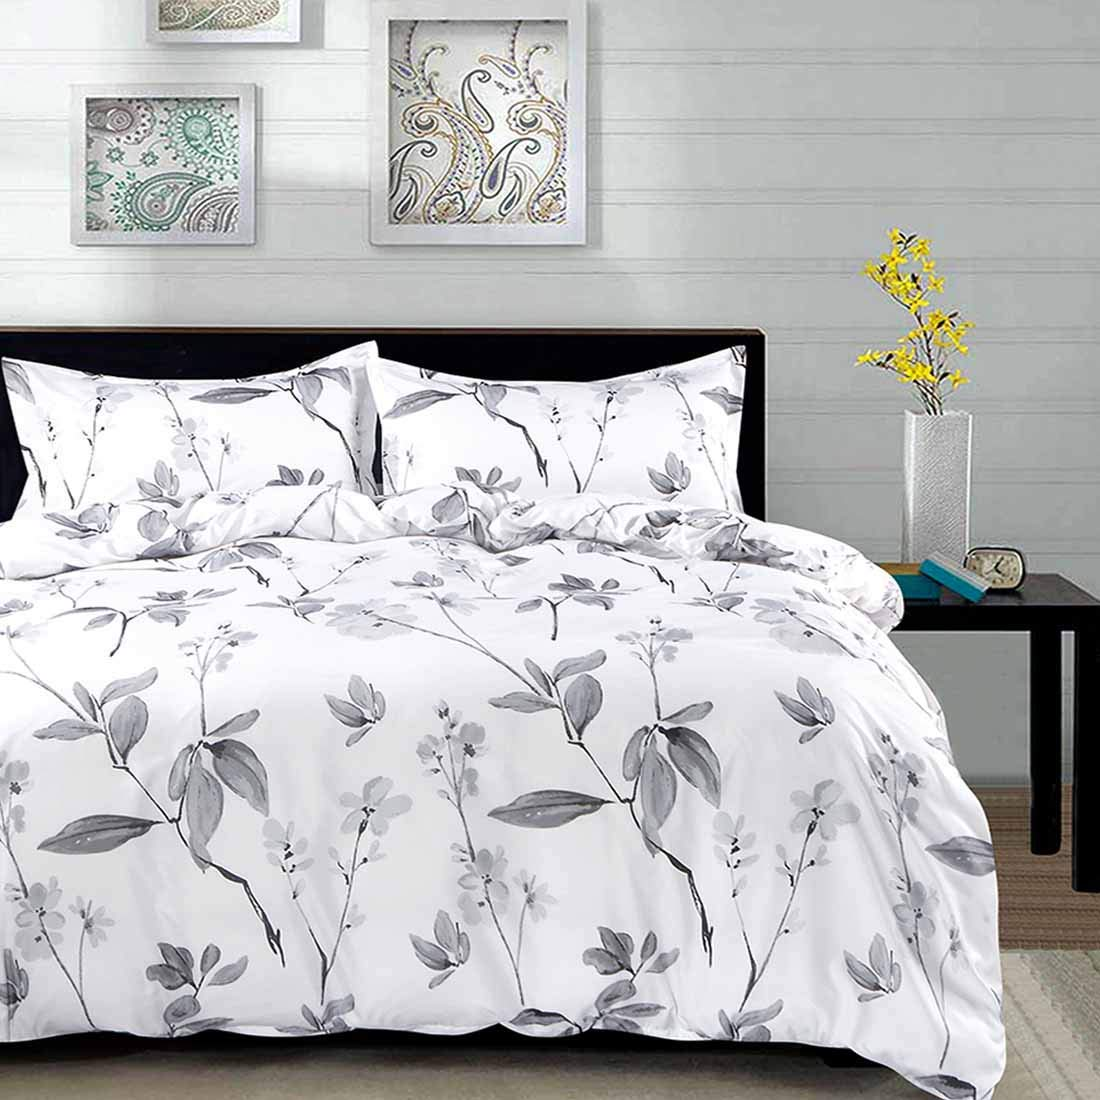 NANKO Duvet Cover Queen Set, 3 Piece - 90 x 90 Luxury Microfiber Down Flowers Comforter Quilt Cover with Zipper, Ties - Best Modern Bedding for Men Women Bed, White Green Floral Leaf